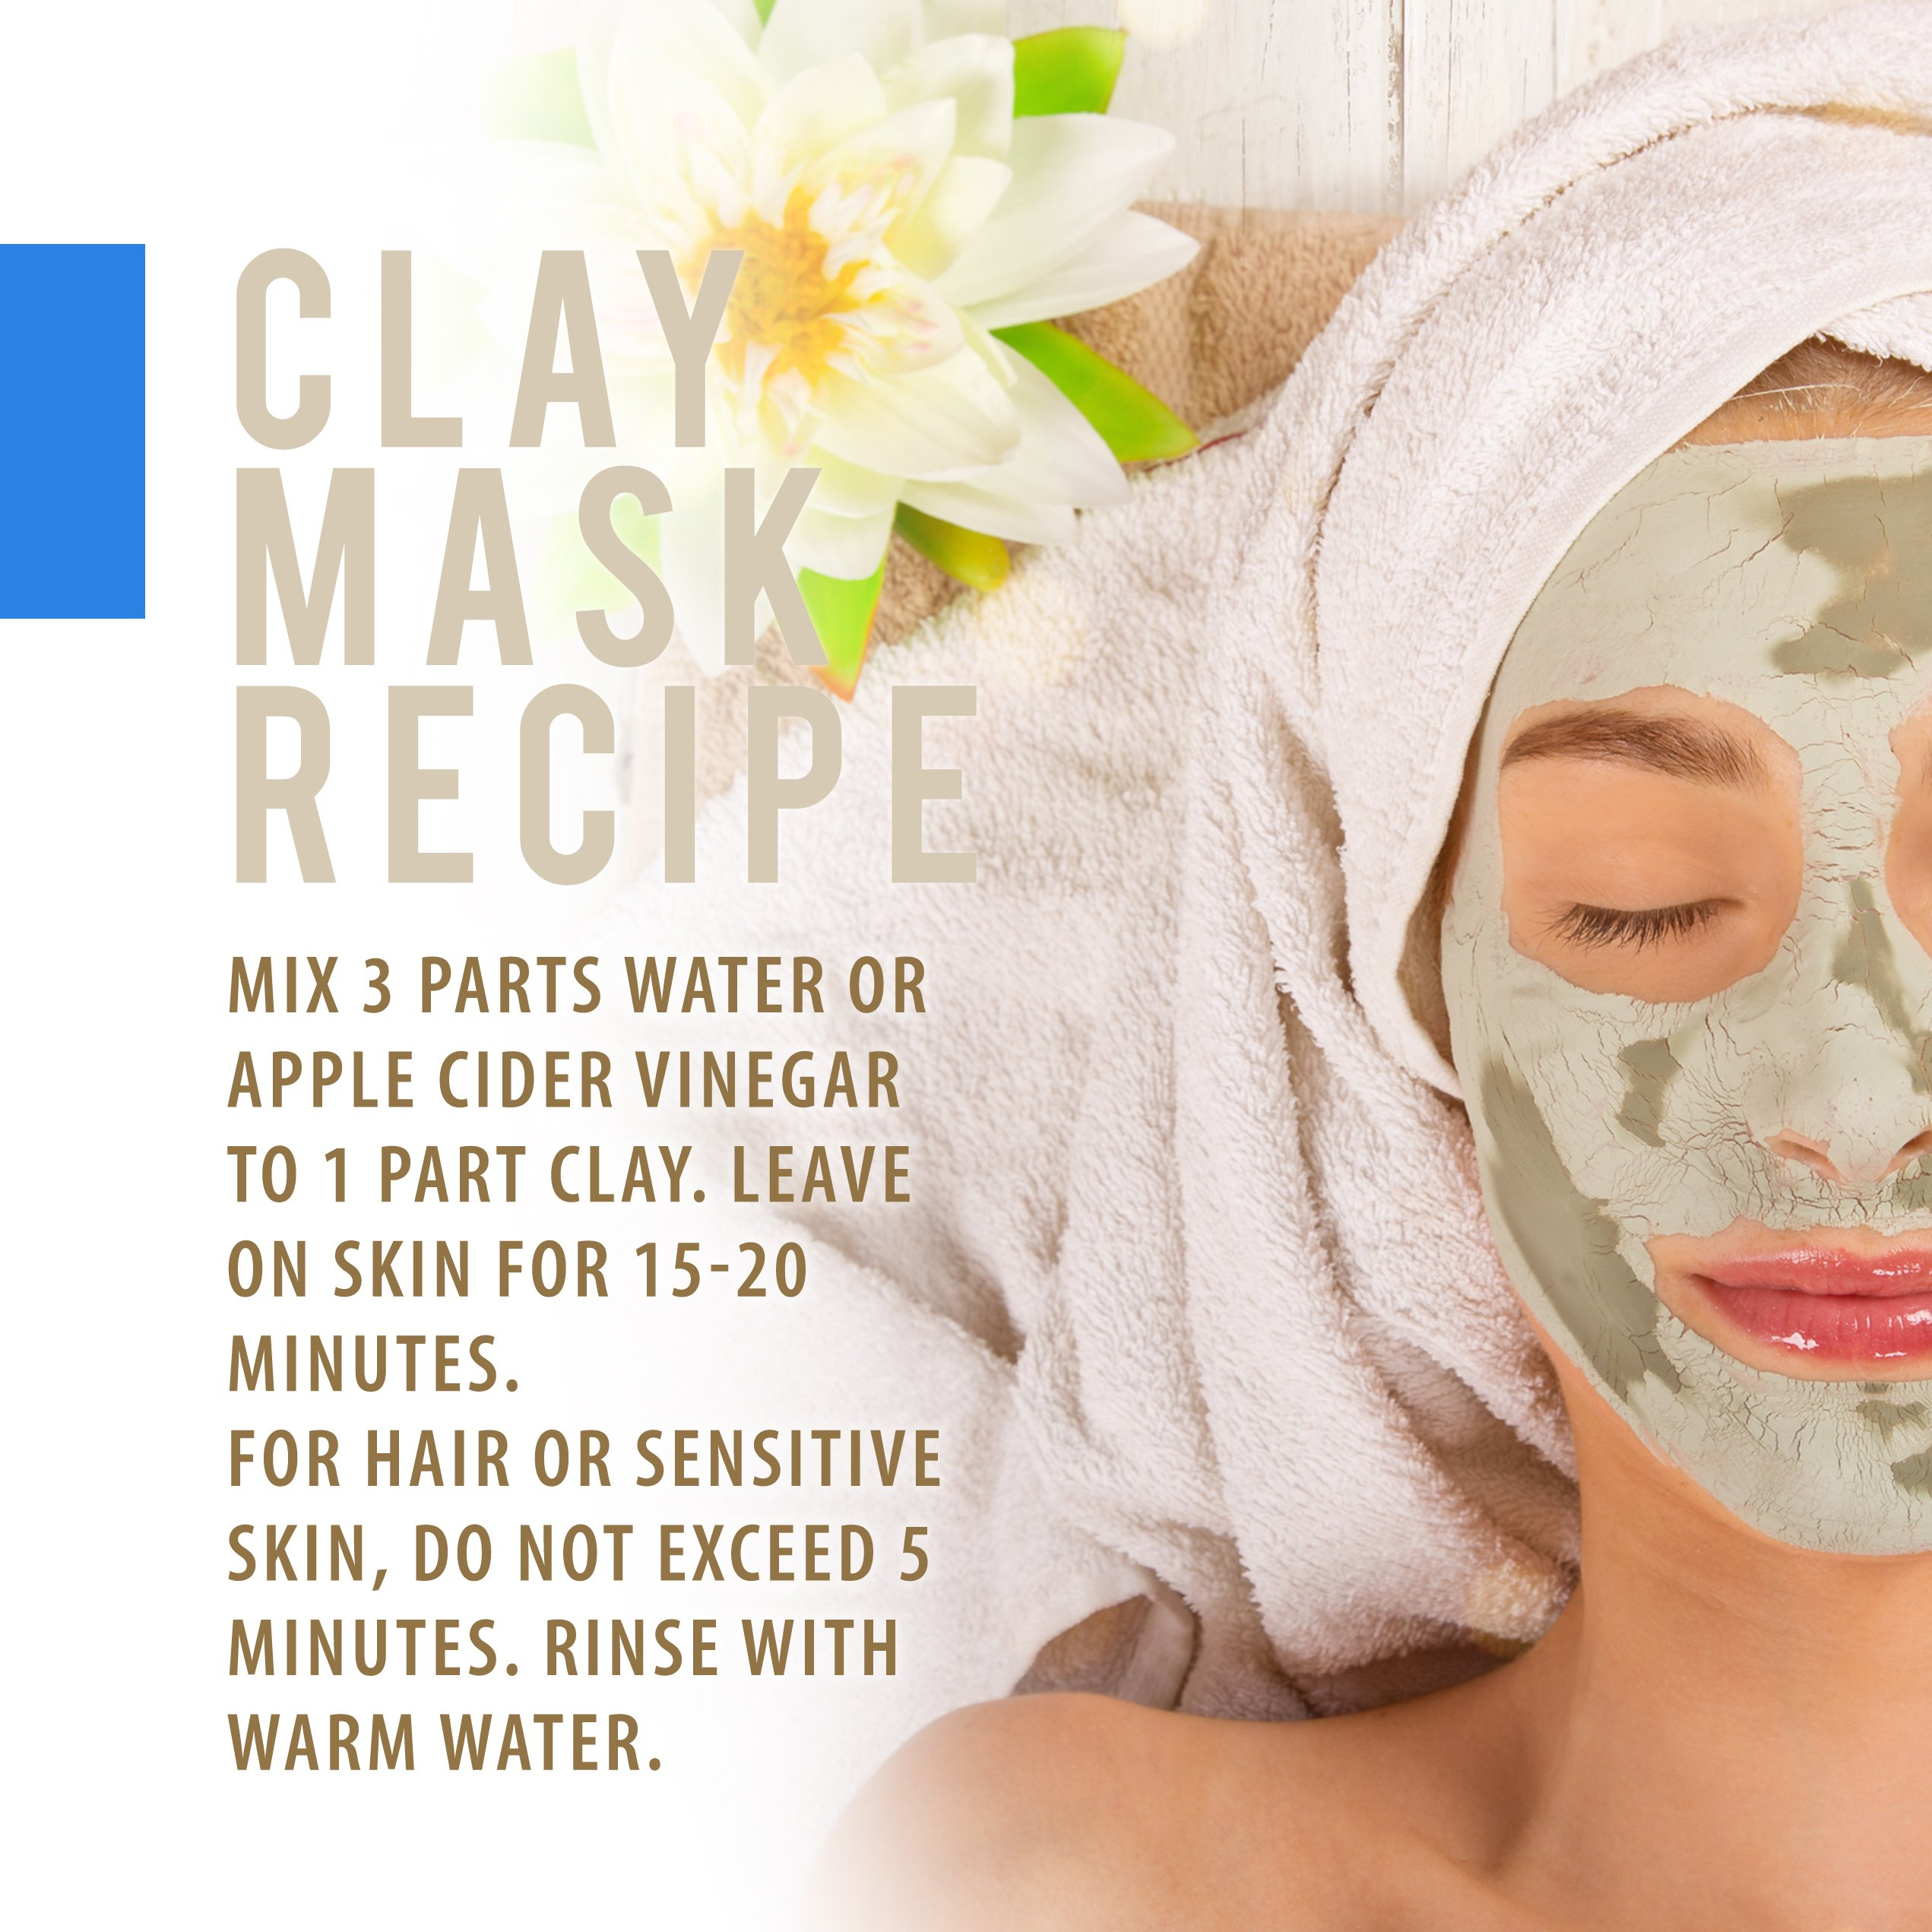 Food Grade Calcium Bentonite Clay - 2 LB Bentonite Montmorillonite Powder - Safe to Ingest for The Ultimate Internal Detox or Make a Clay Face Mask for The Best Natural Skin Healing Powder by Aspen Naturals® (Image #4)